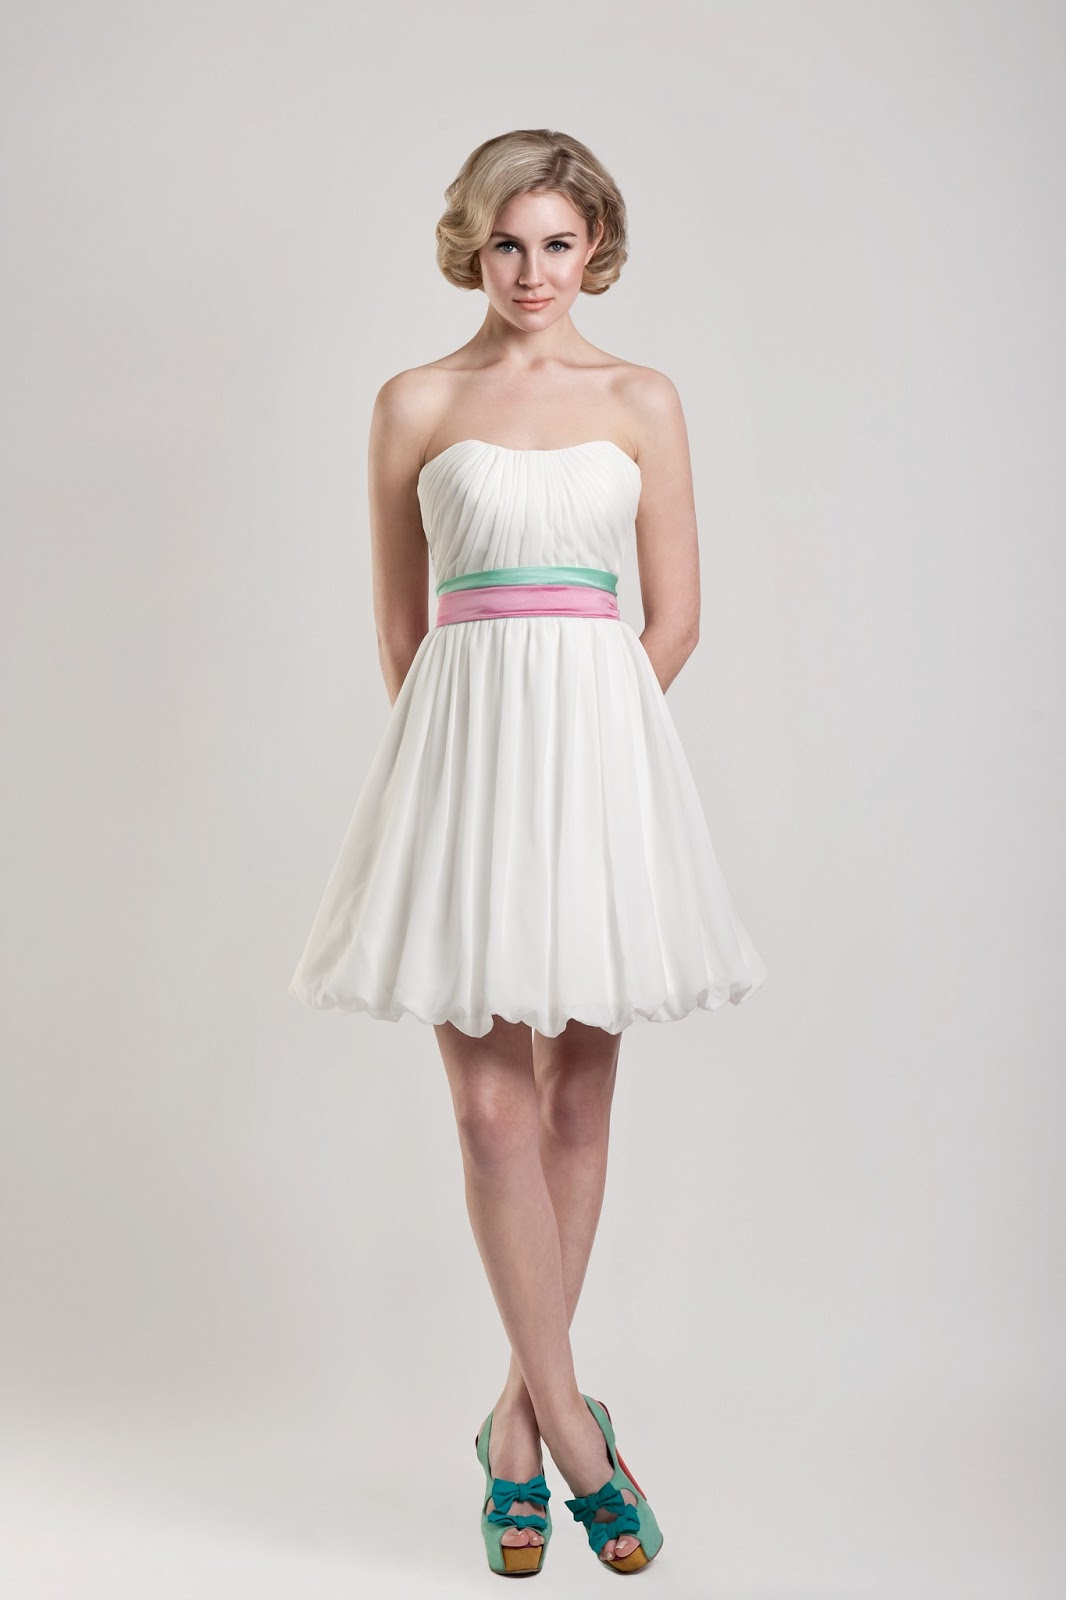 dressybridal 5 cute short wedding dresses for summer With cute summer wedding dresses